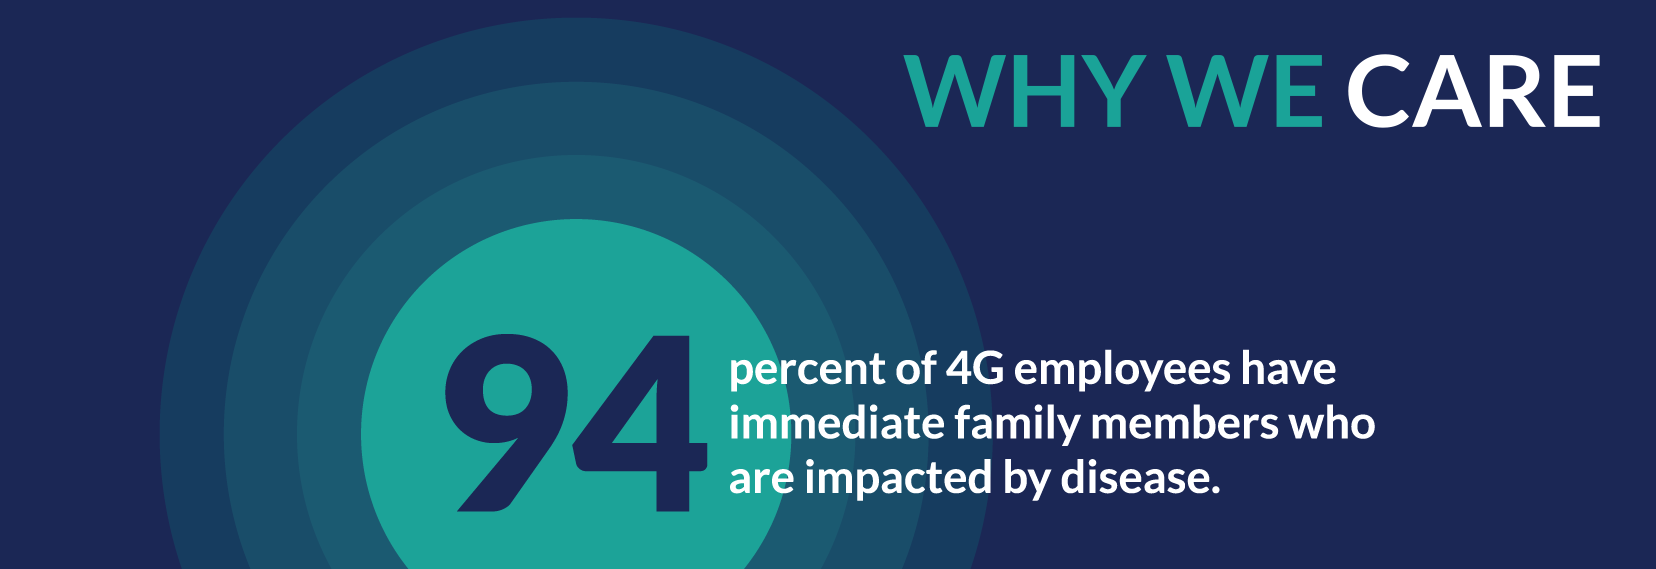 Why We Care: 94% of 4G employees have immediate family impacted by disease